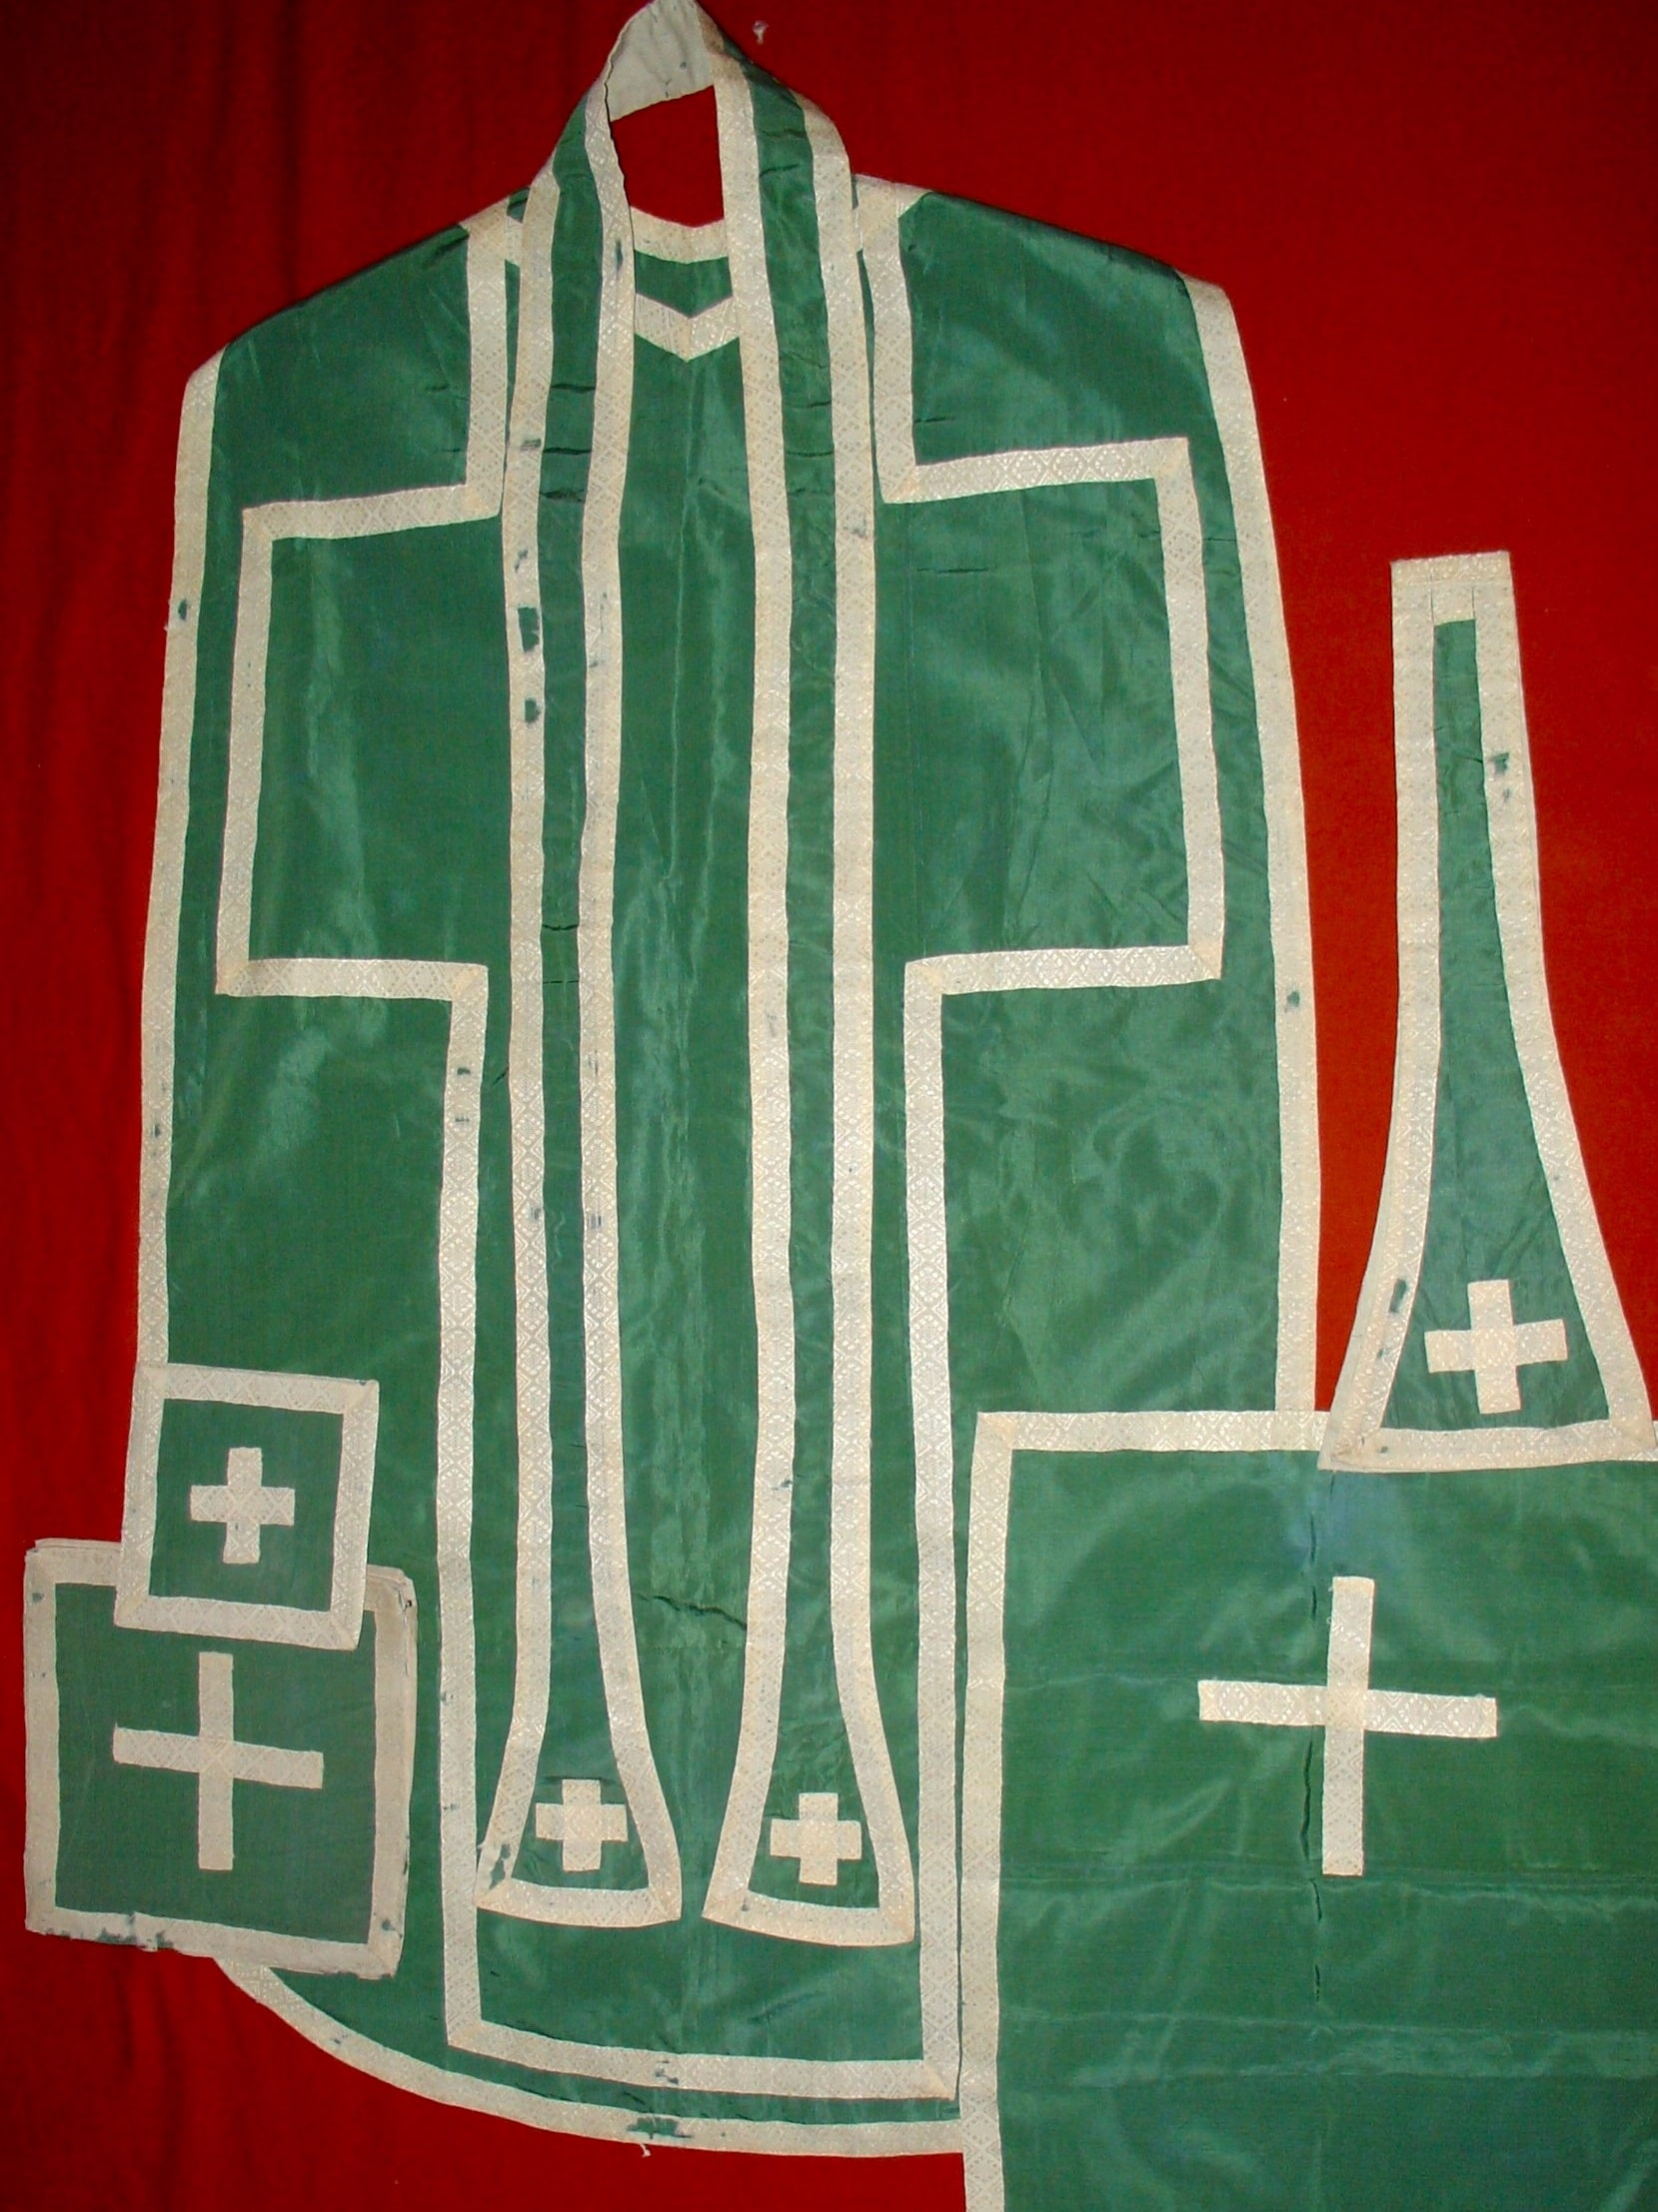 Green silk vestments which have been laid out on red cloth